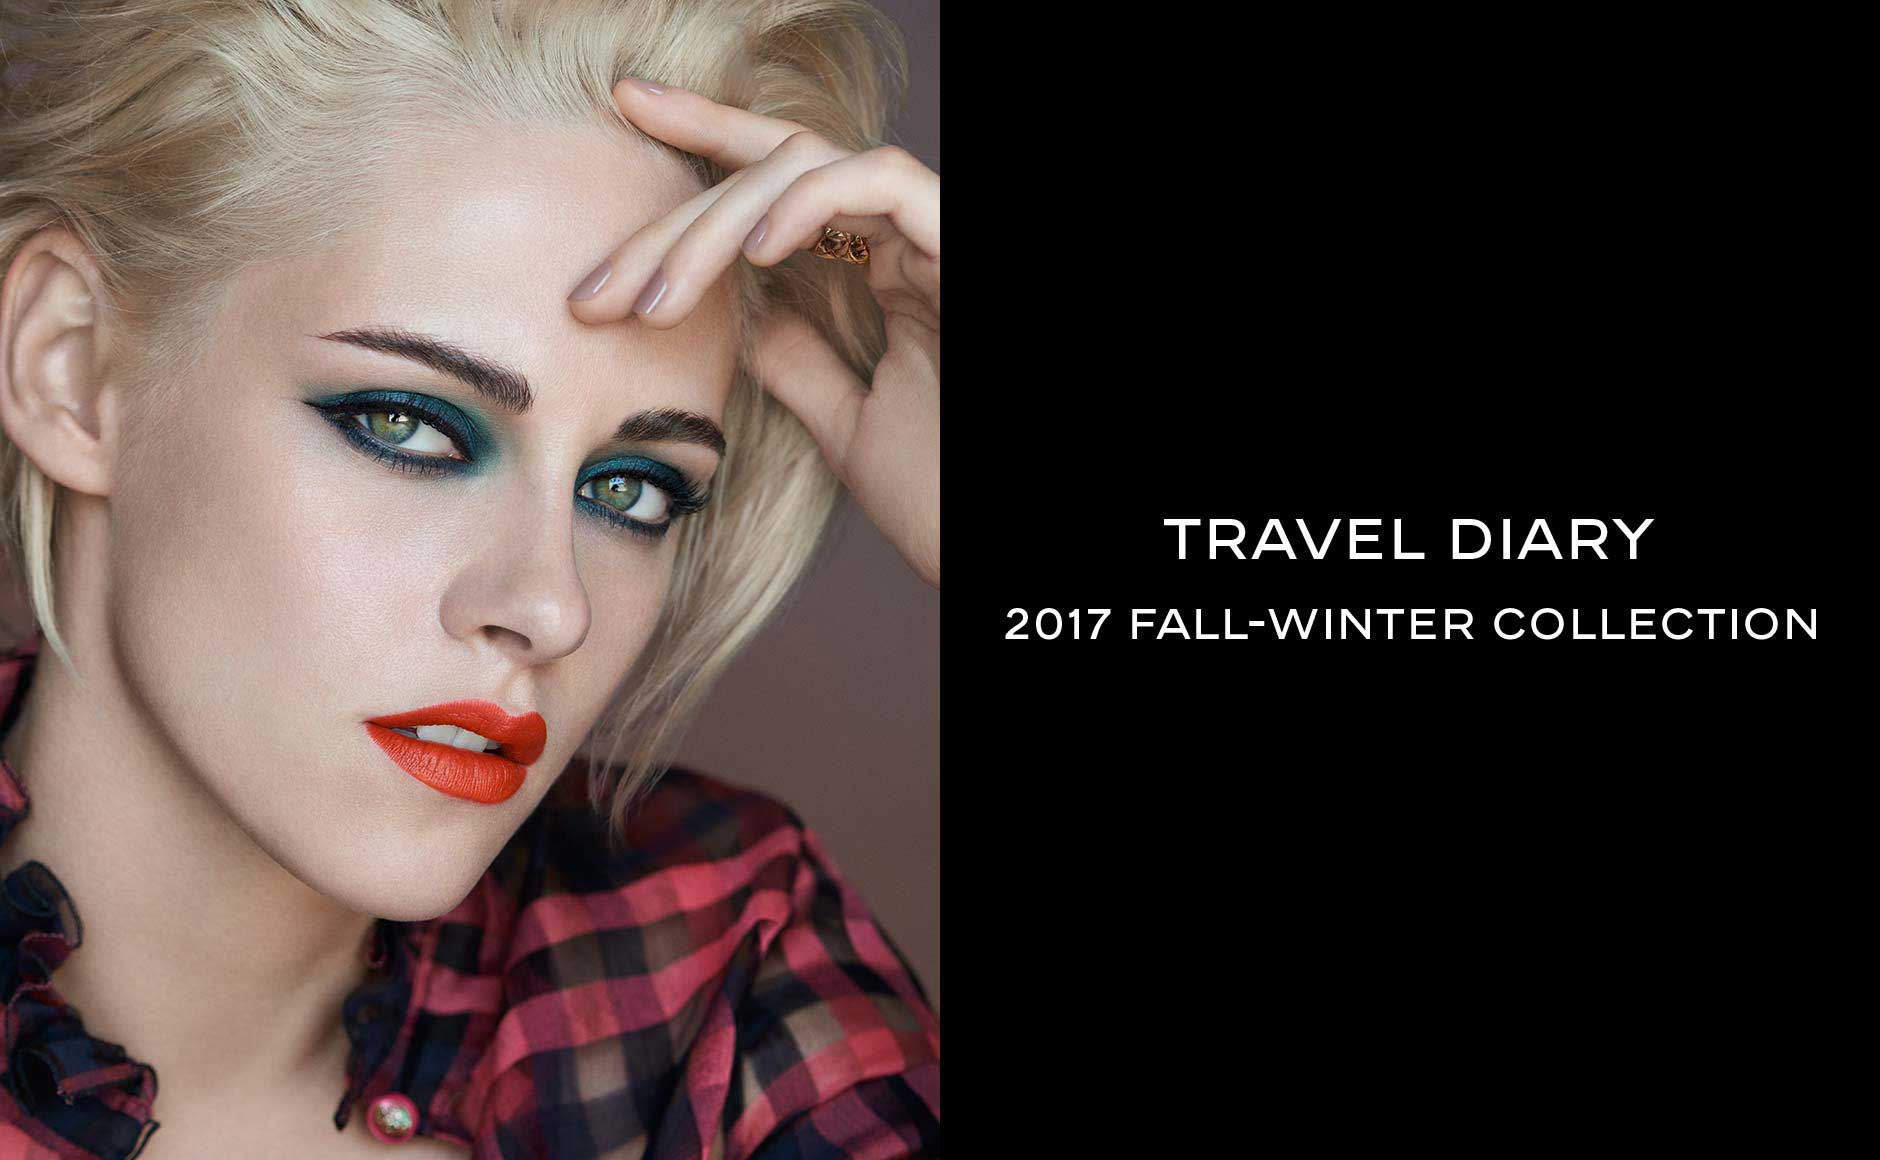 Travel Diary - 2017 Fall-Winter Collection